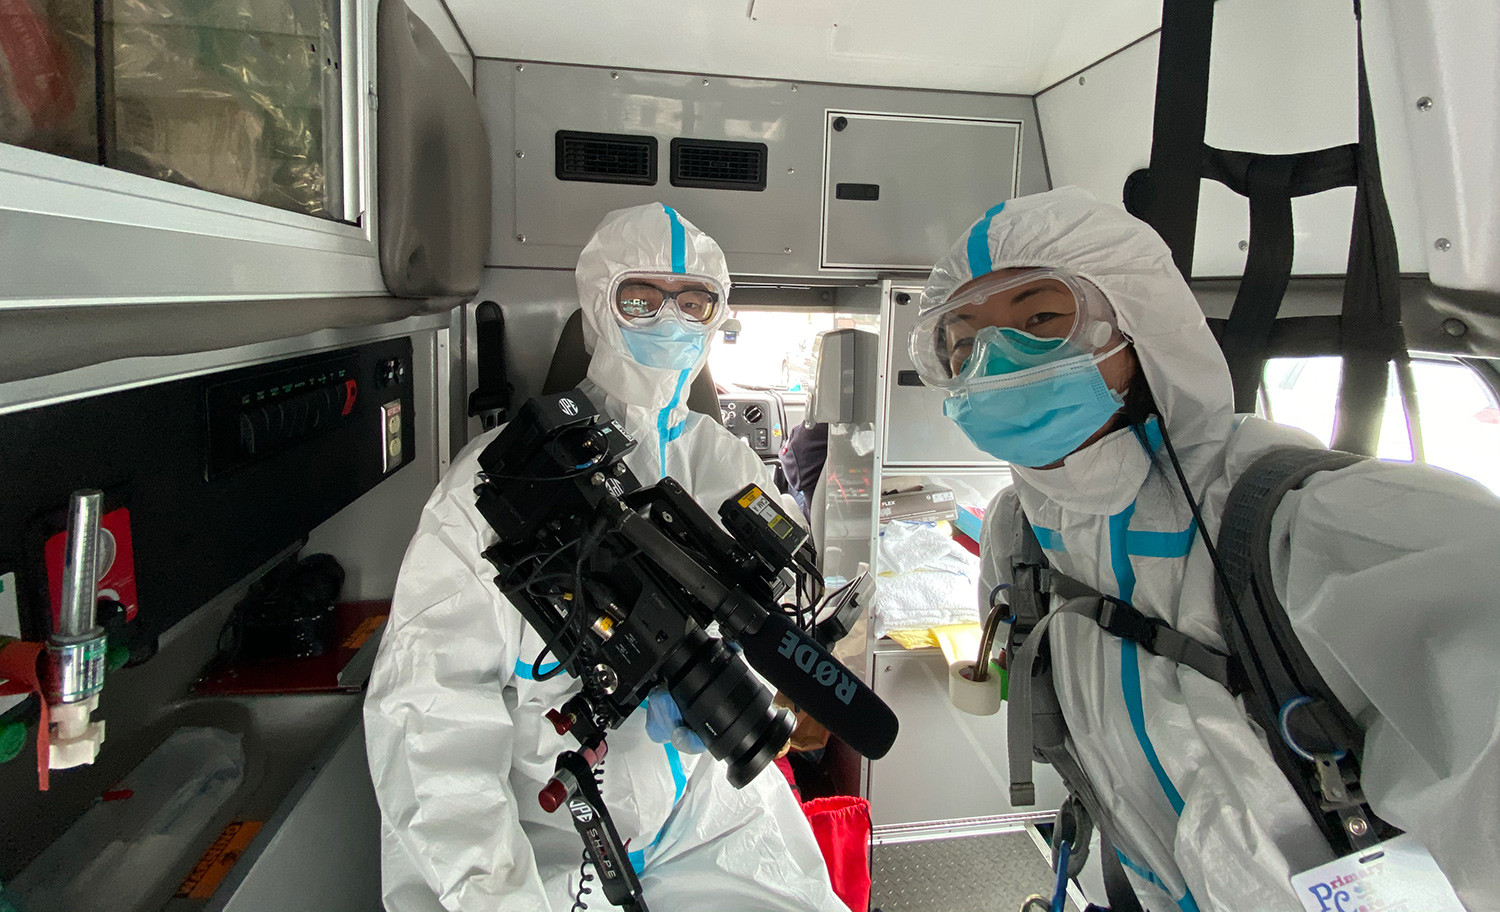 Location sound mixer Emily Strong in production in New York City at the height of the COVID-19 pandemic. They are in white protective coverall suit with disposable mask and goggles inside a van. Courtesy of Emily Strong